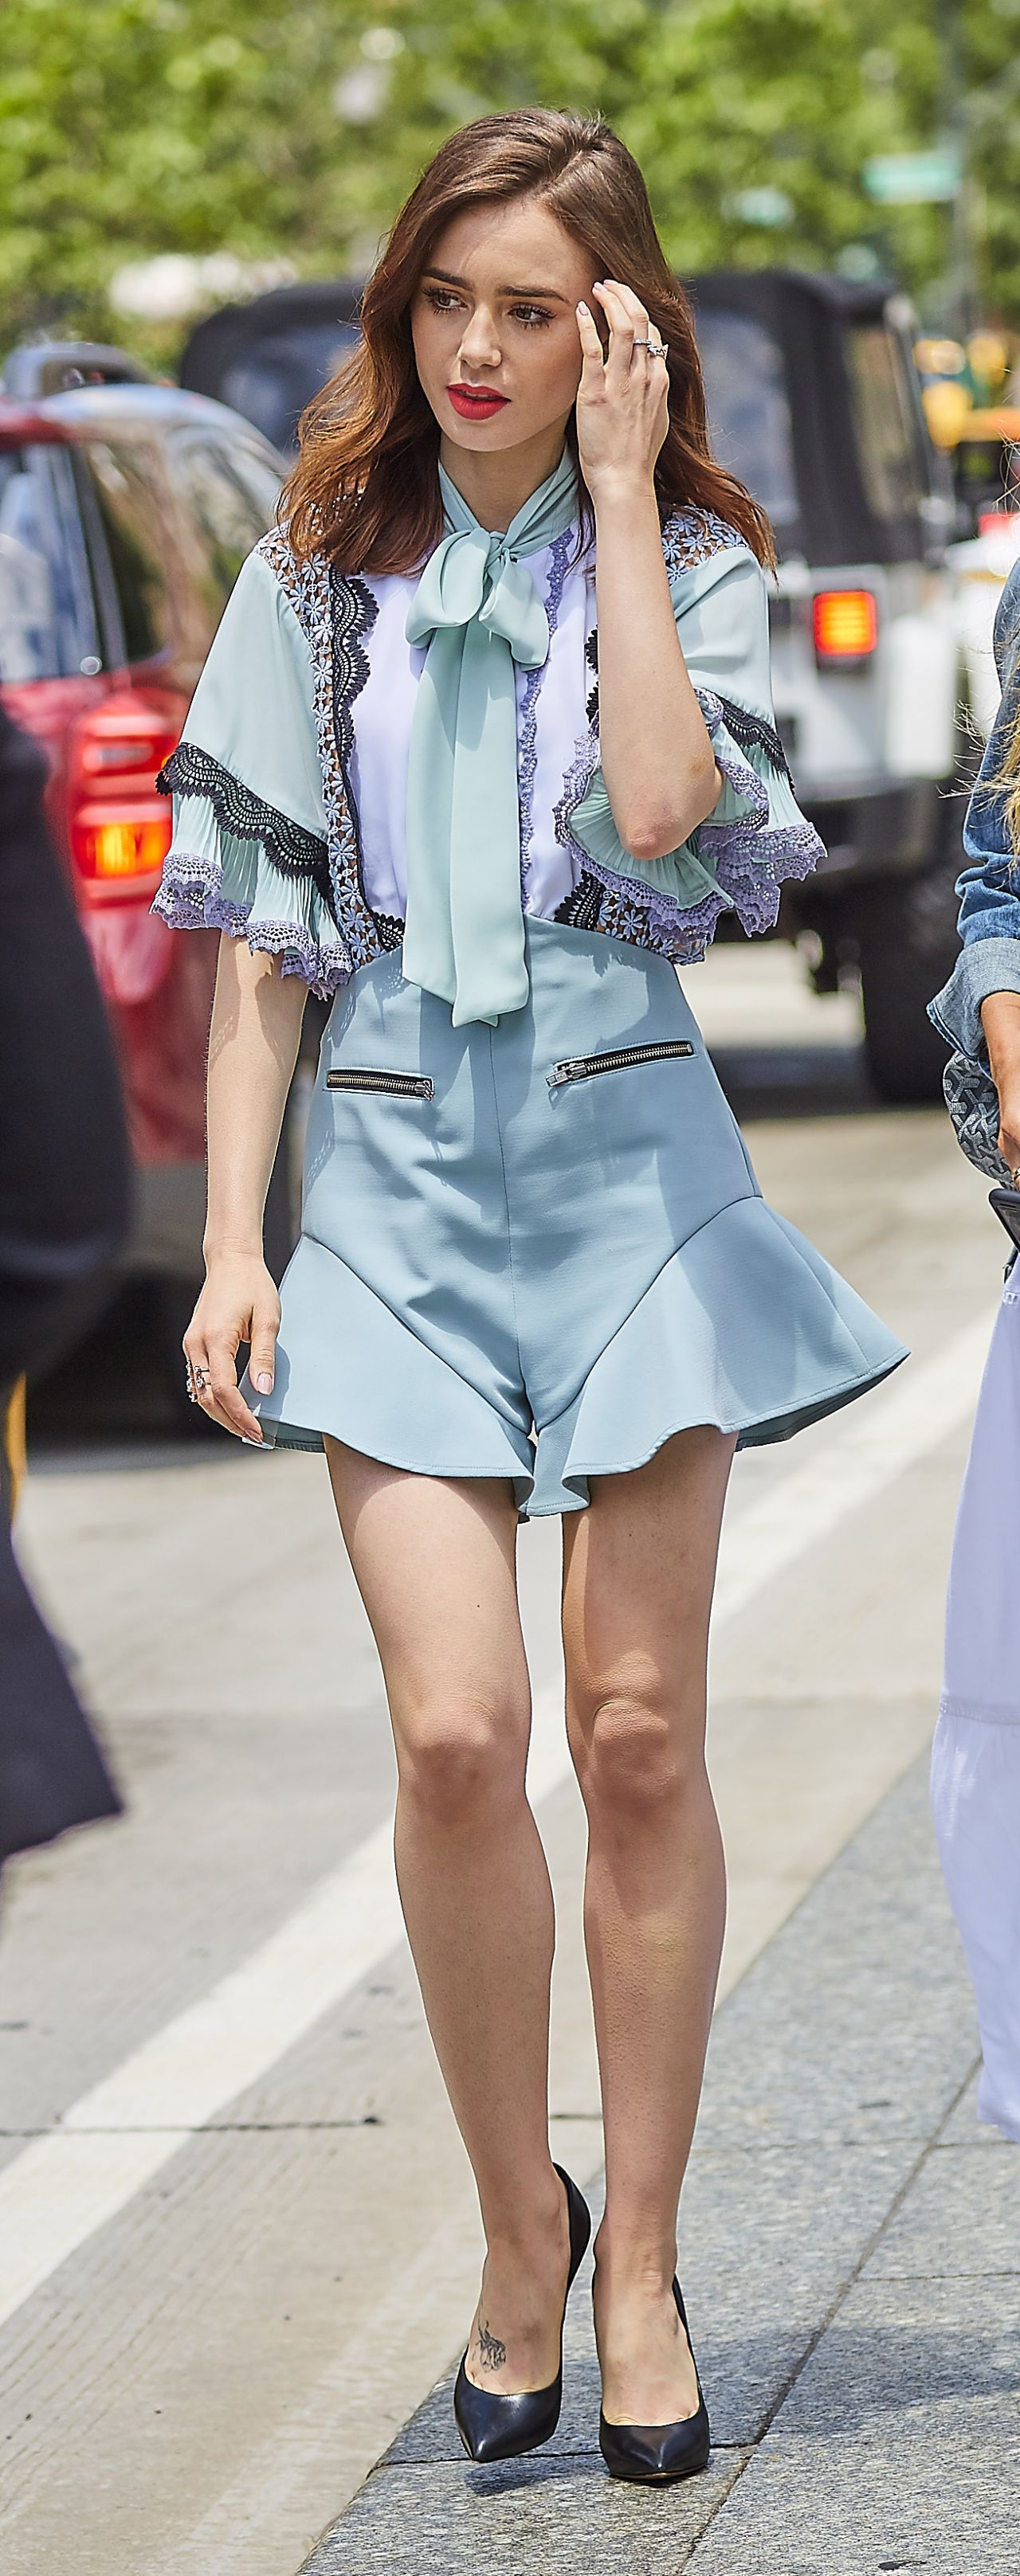 Lily collins in lace trim play suit new york city nude (51 photos), Leaked Celebrites images